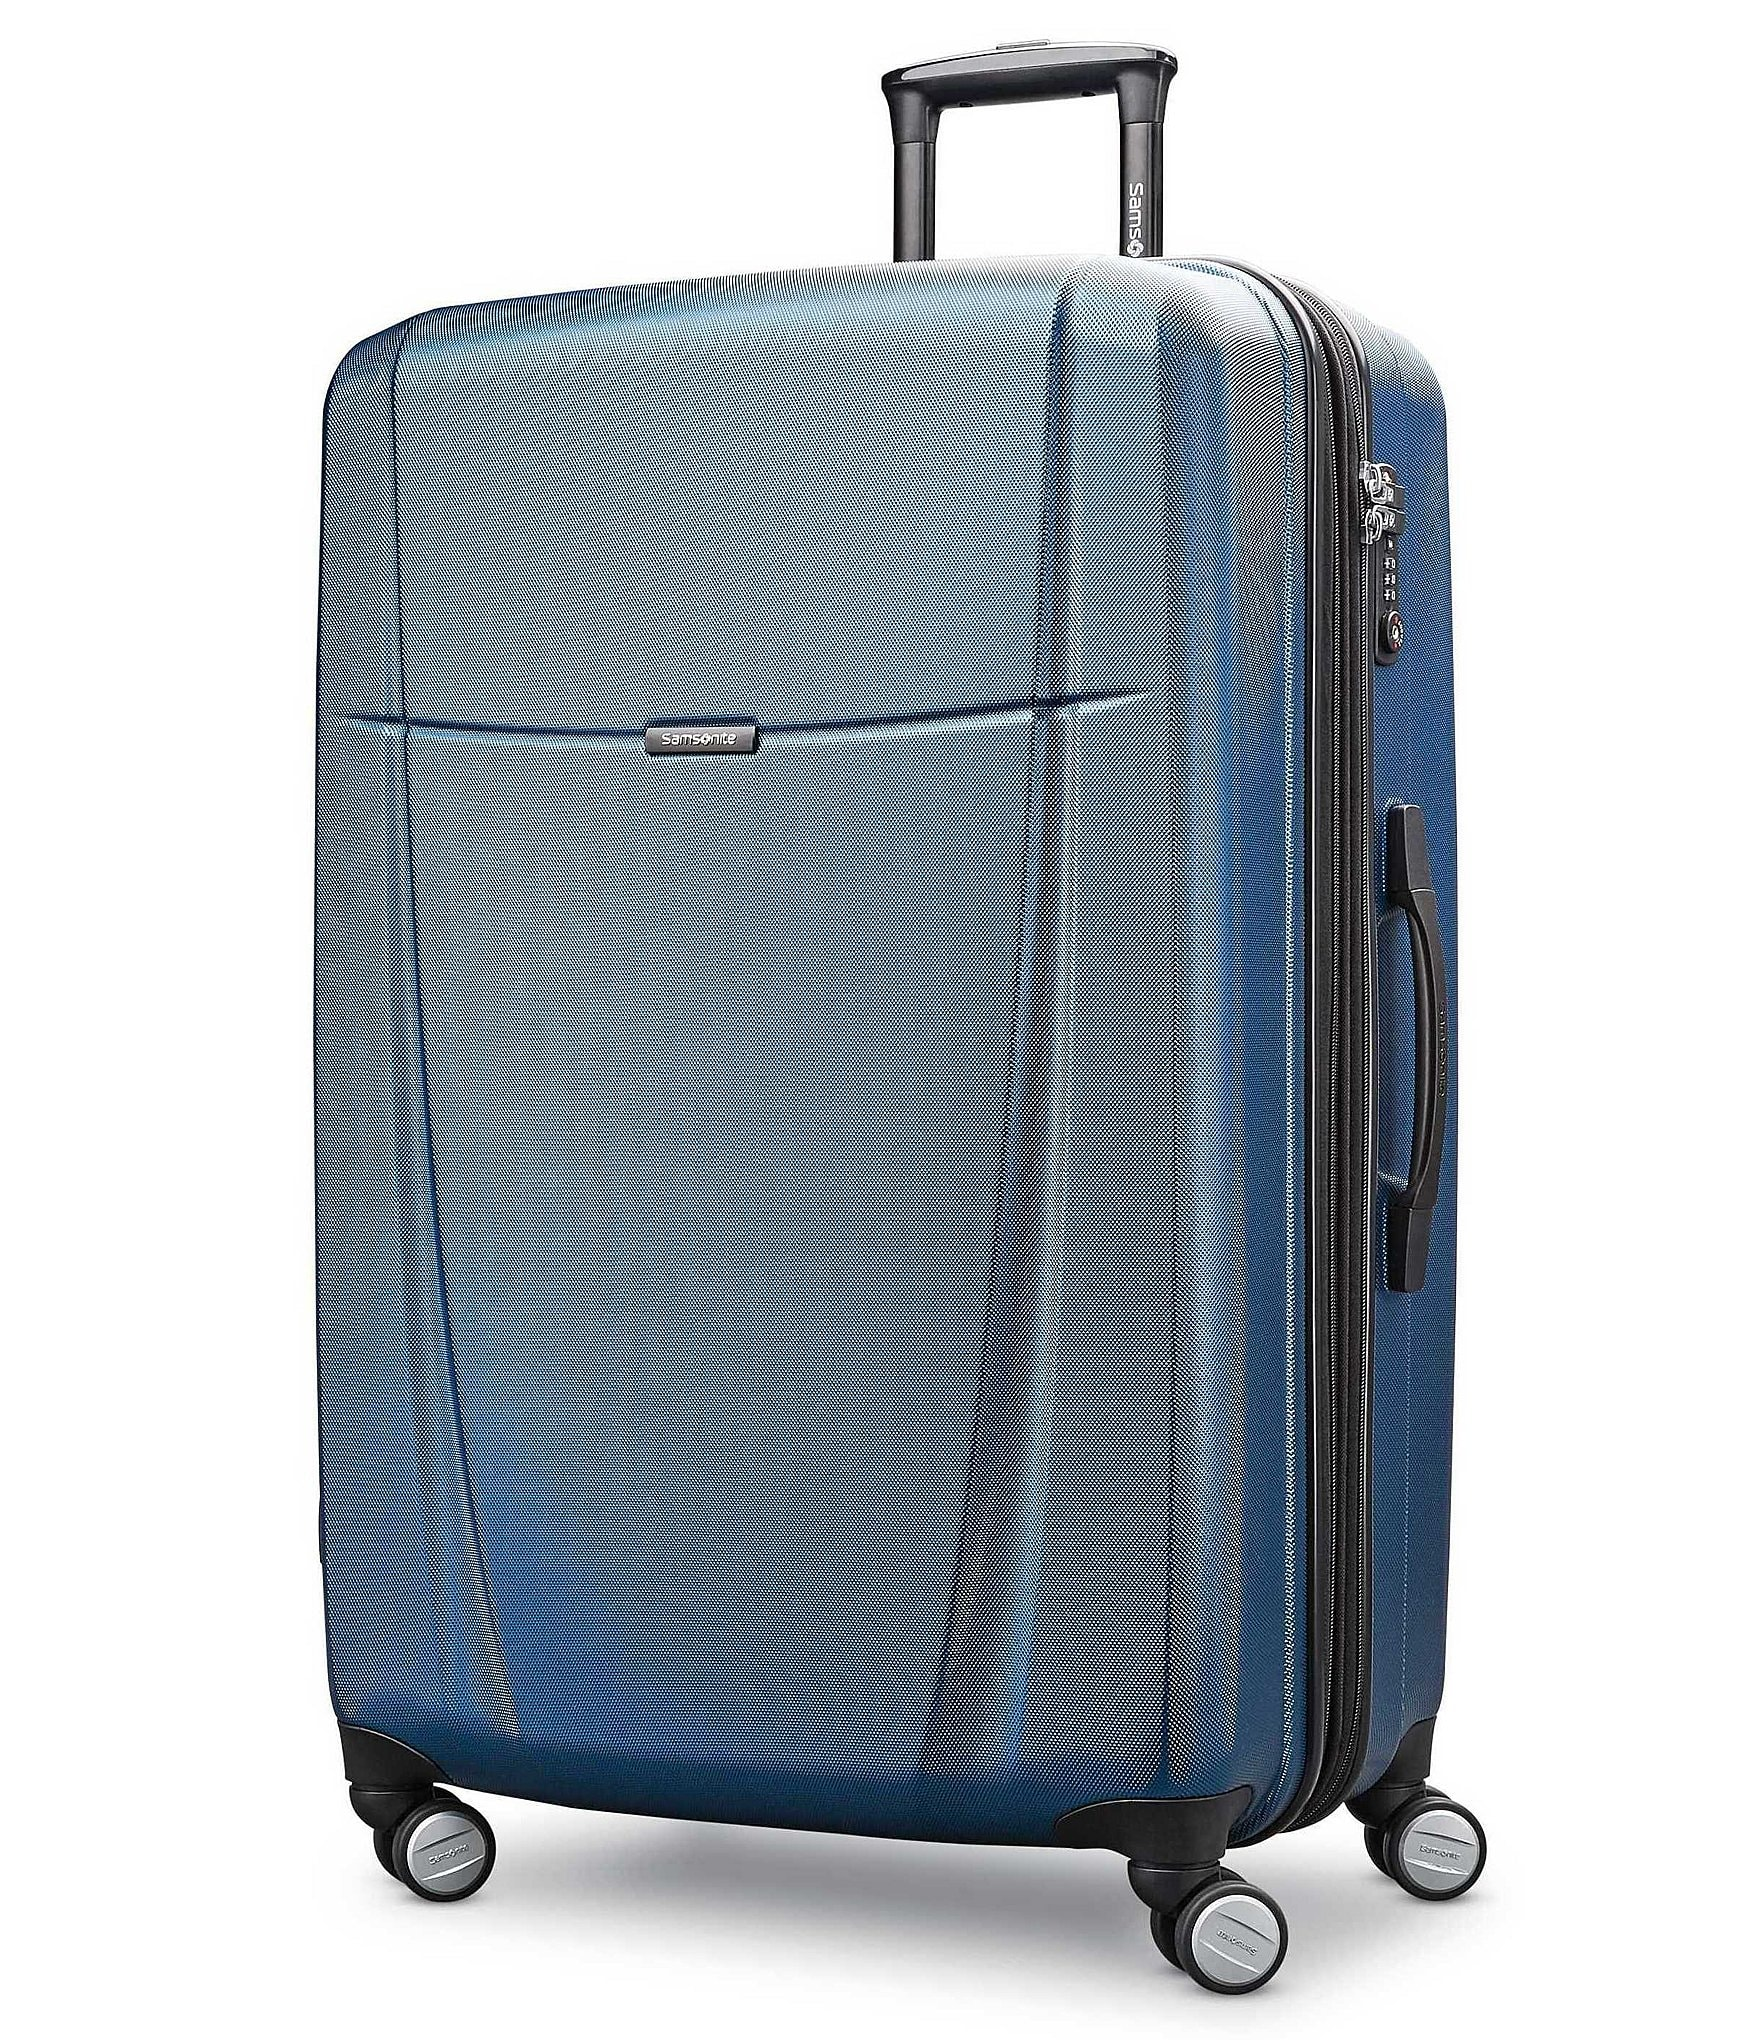 Luggage & Travel Accessories | Dillards